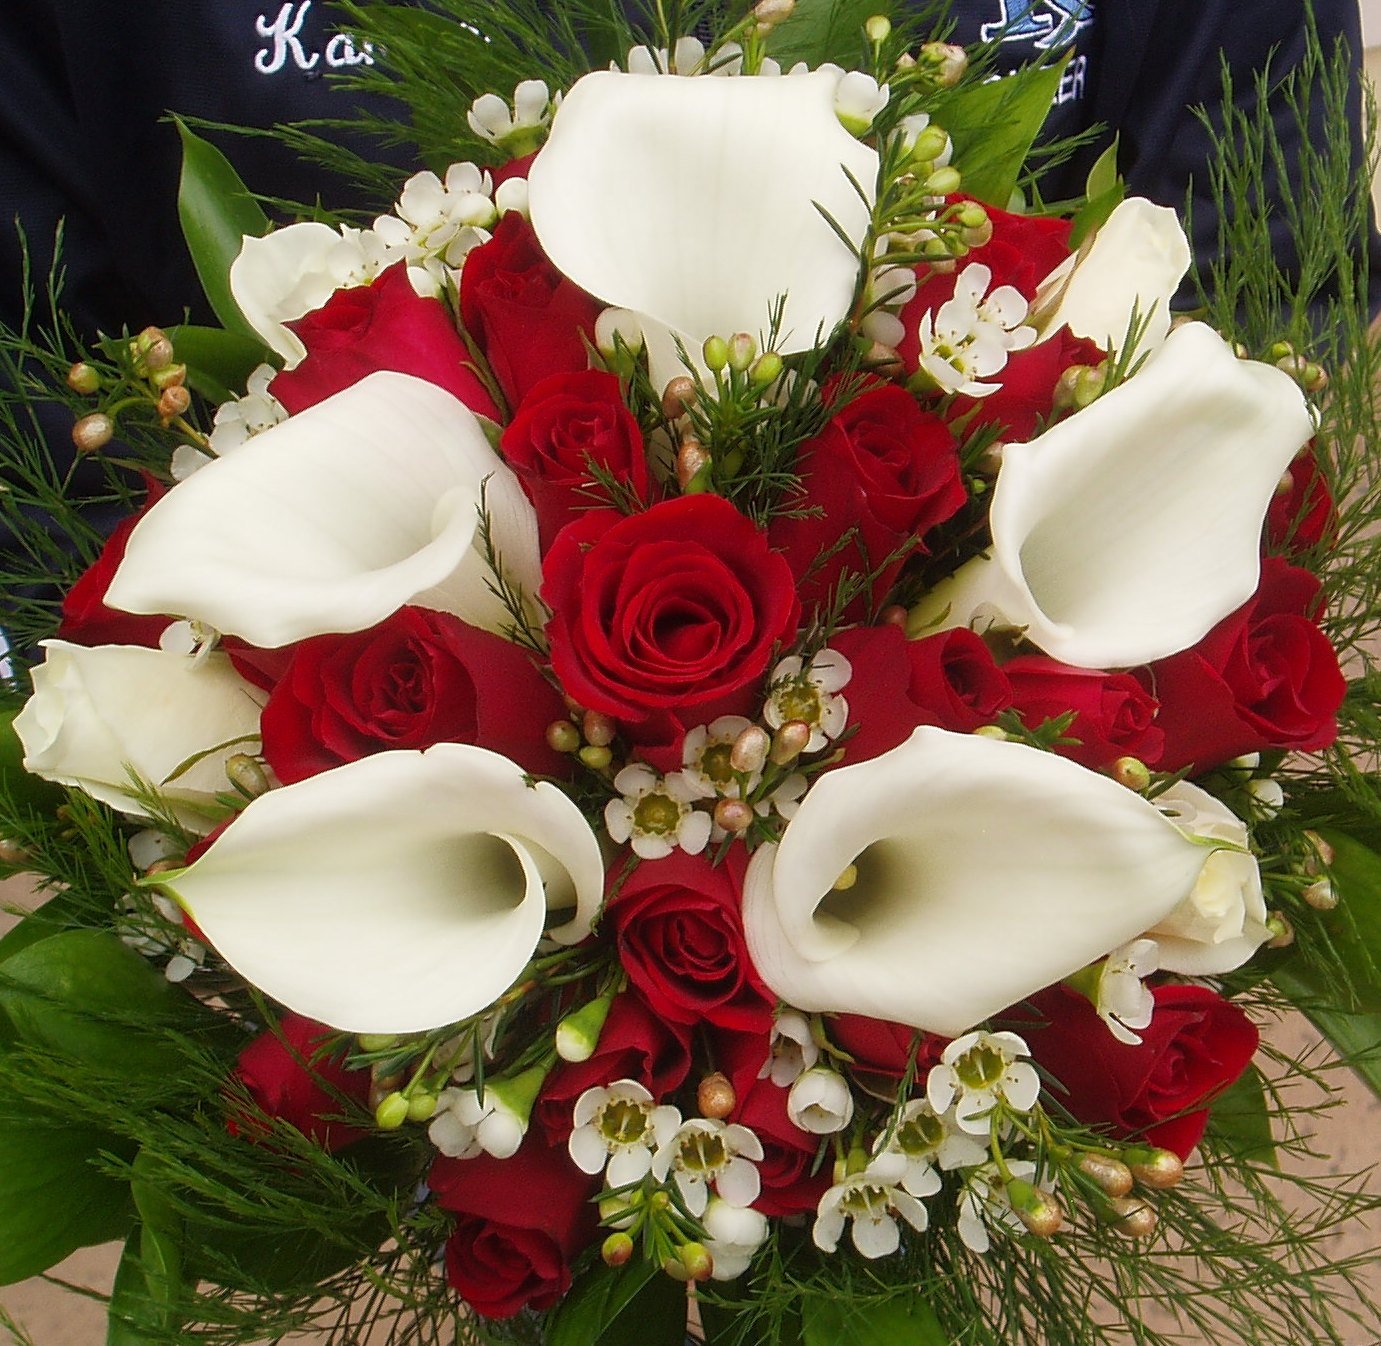 Wedding Flowers Lilies : Wedding decor calla lily flowers decorate in a